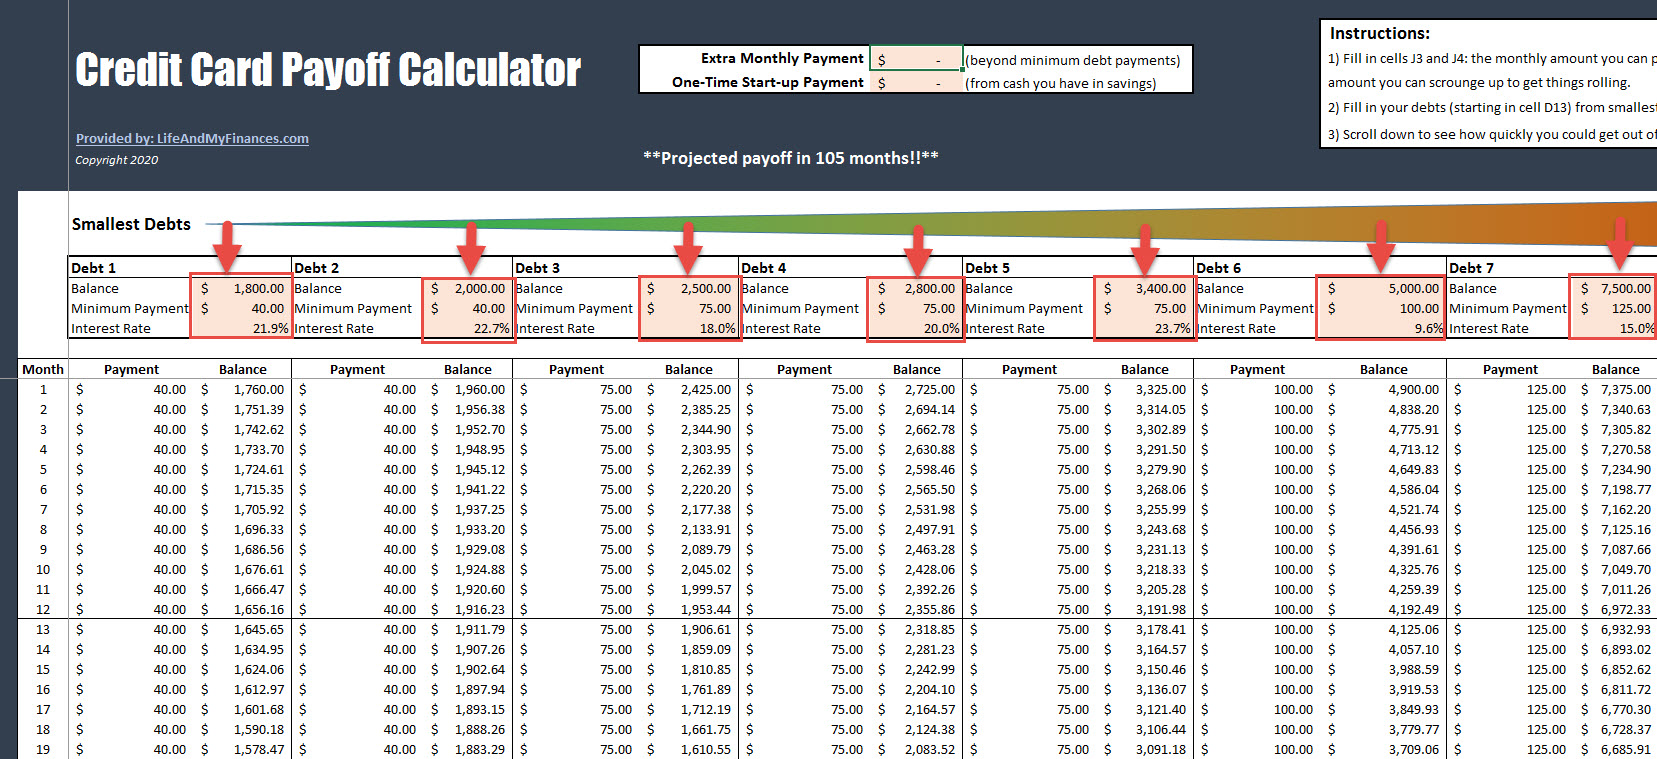 Credit Card Payoff Calculator - Initial Entires